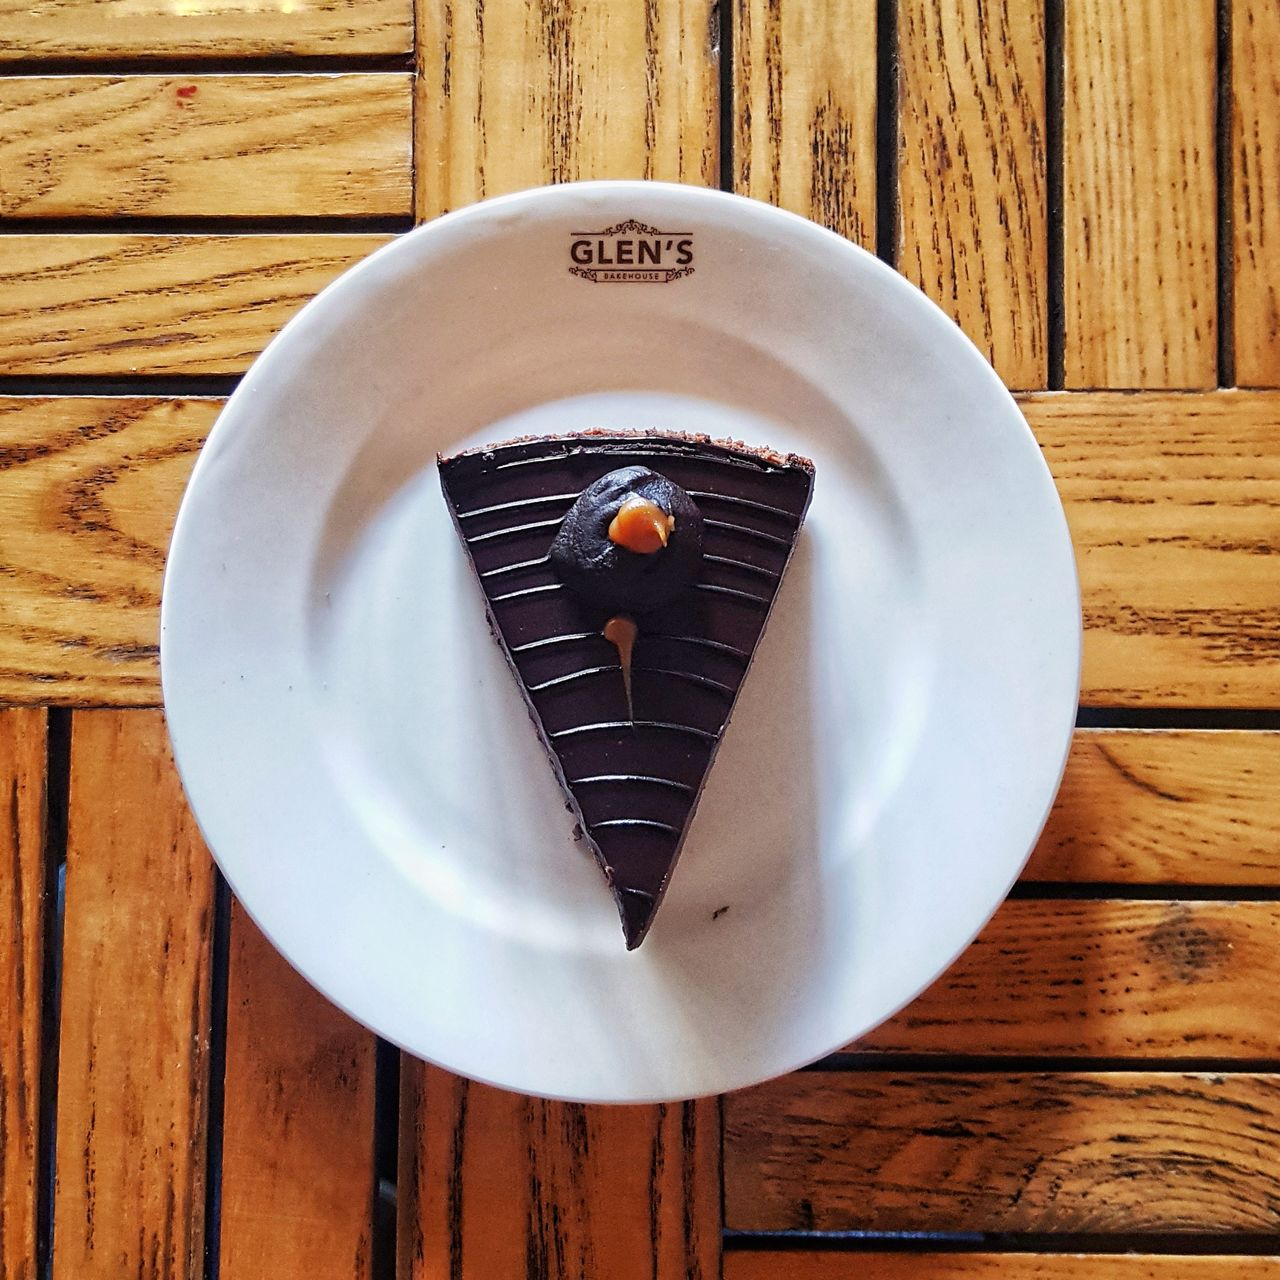 wood - material, plate, table, food and drink, directly above, no people, high angle view, food, indoors, day, freshness, close-up, healthy eating, ready-to-eat